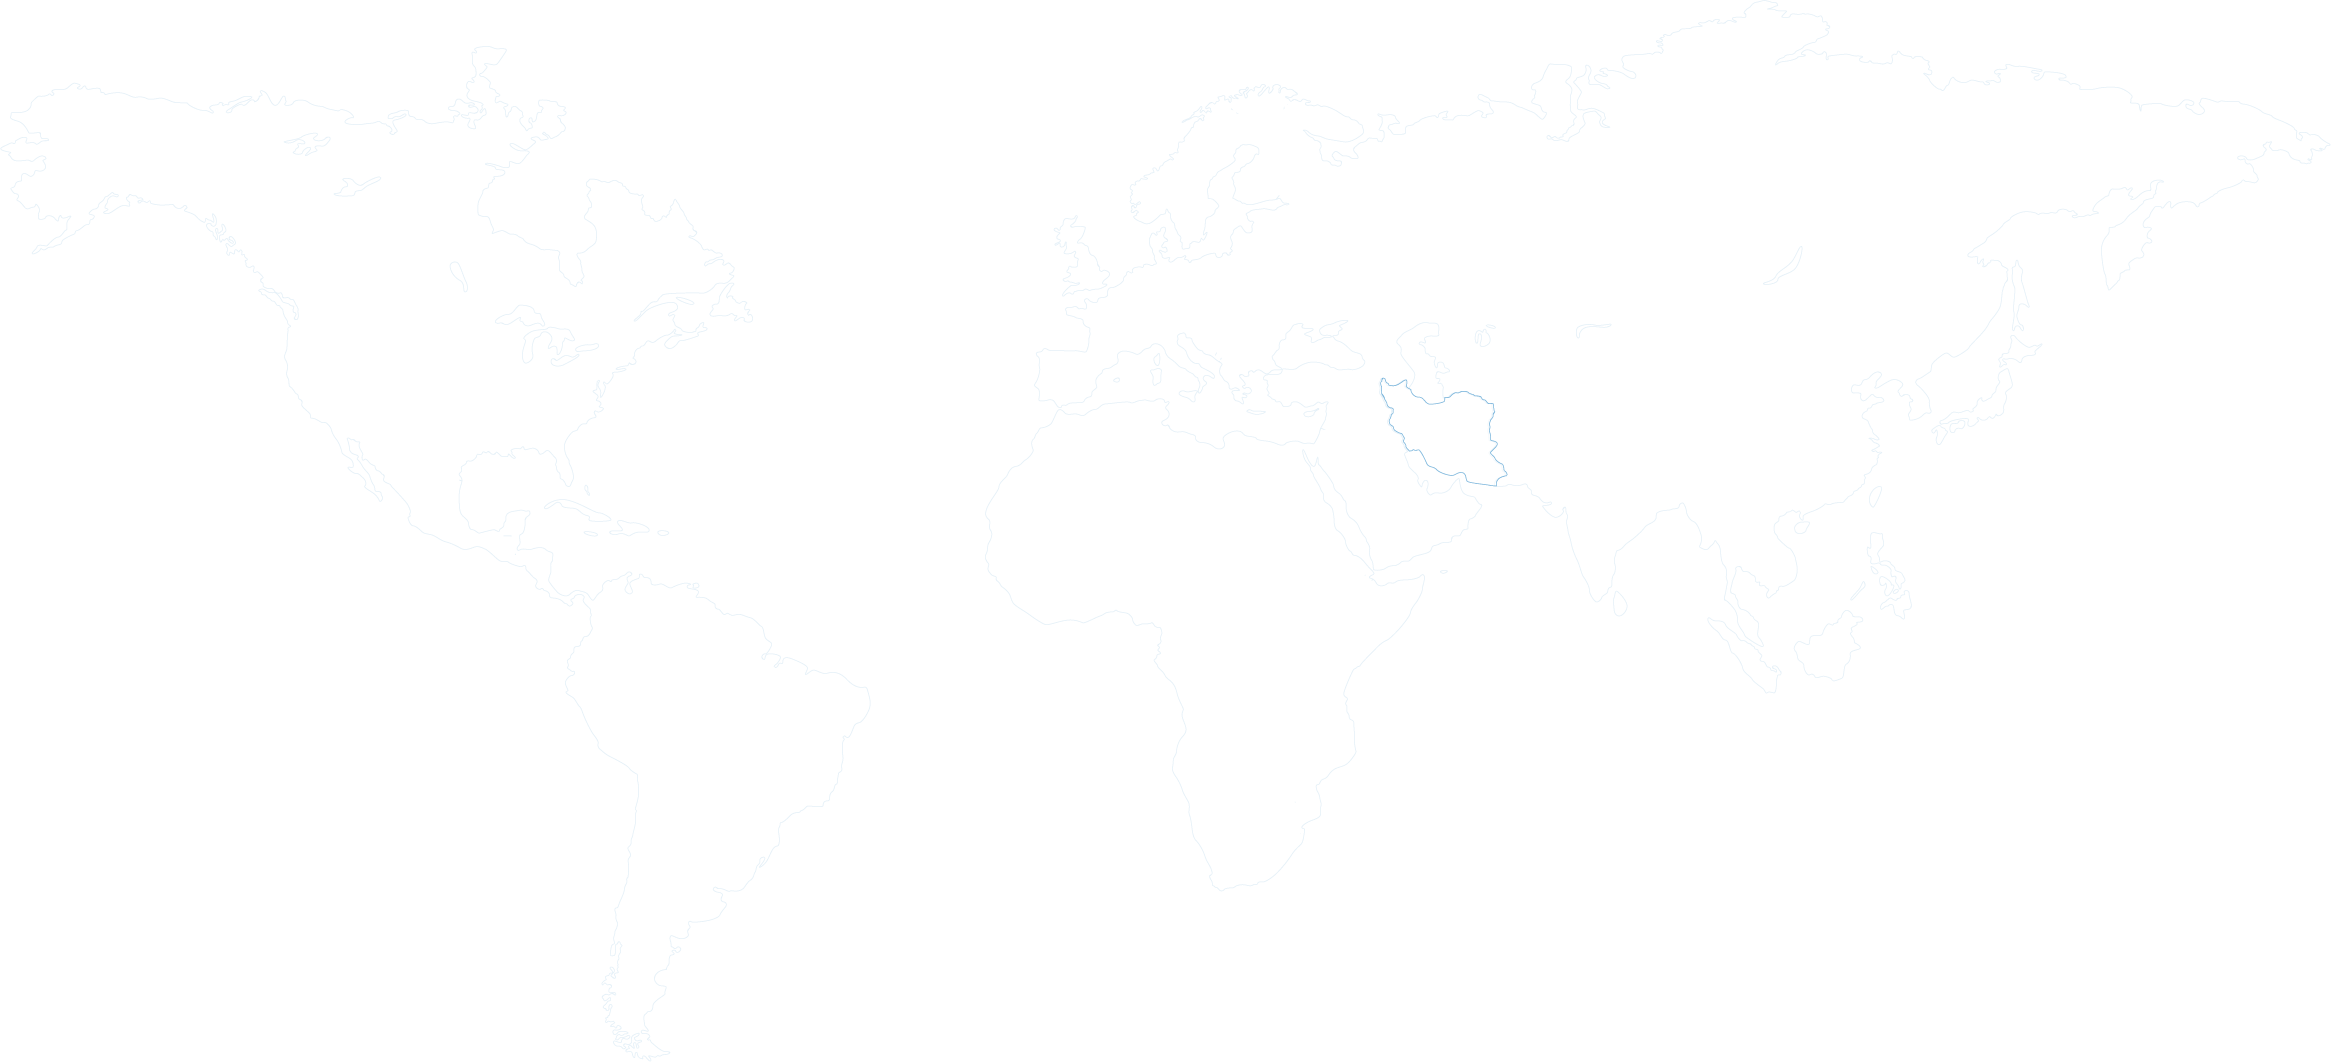 Iran in world map